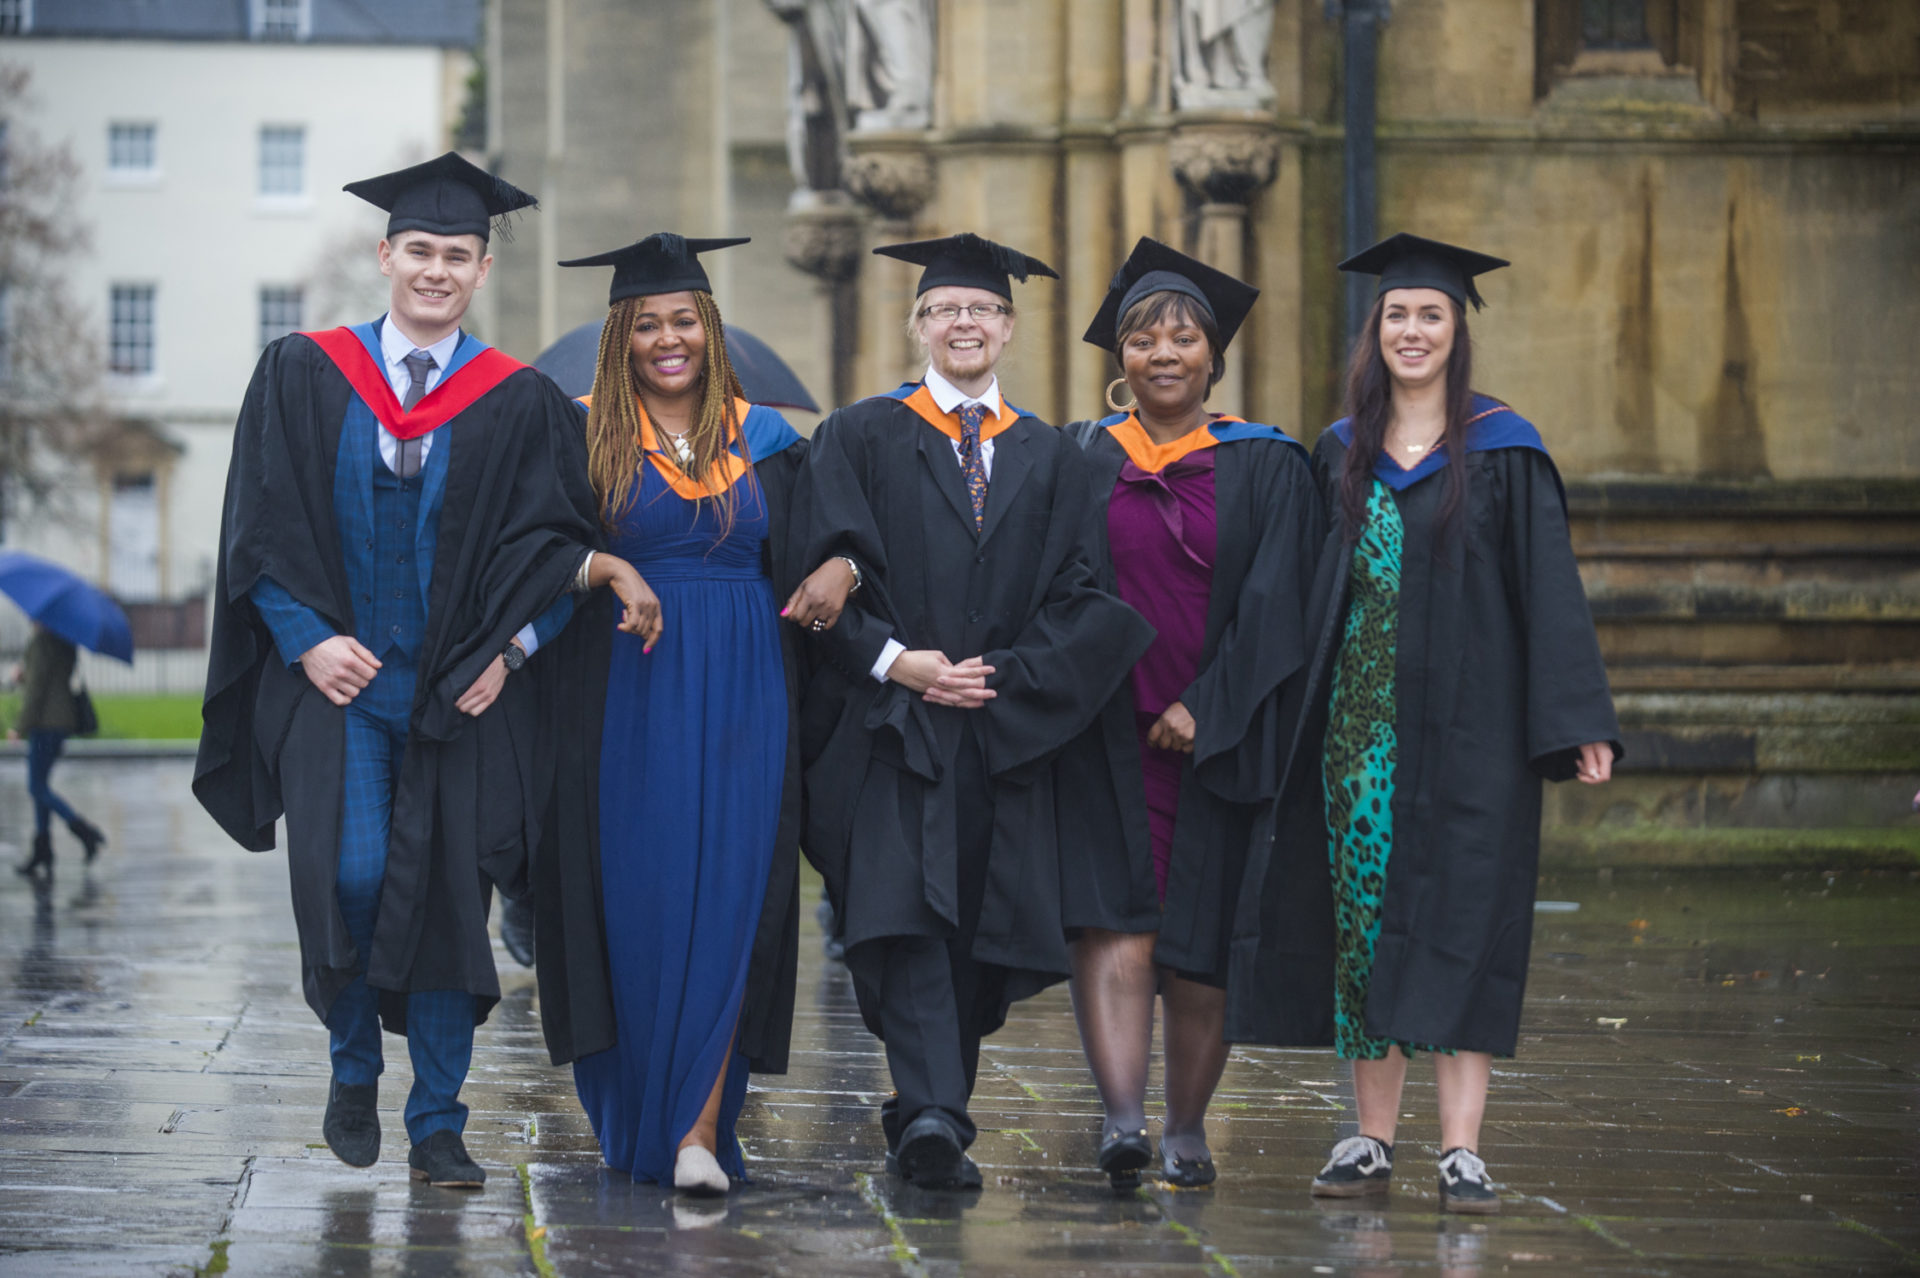 City of Bristol College Graduation outside cathedral